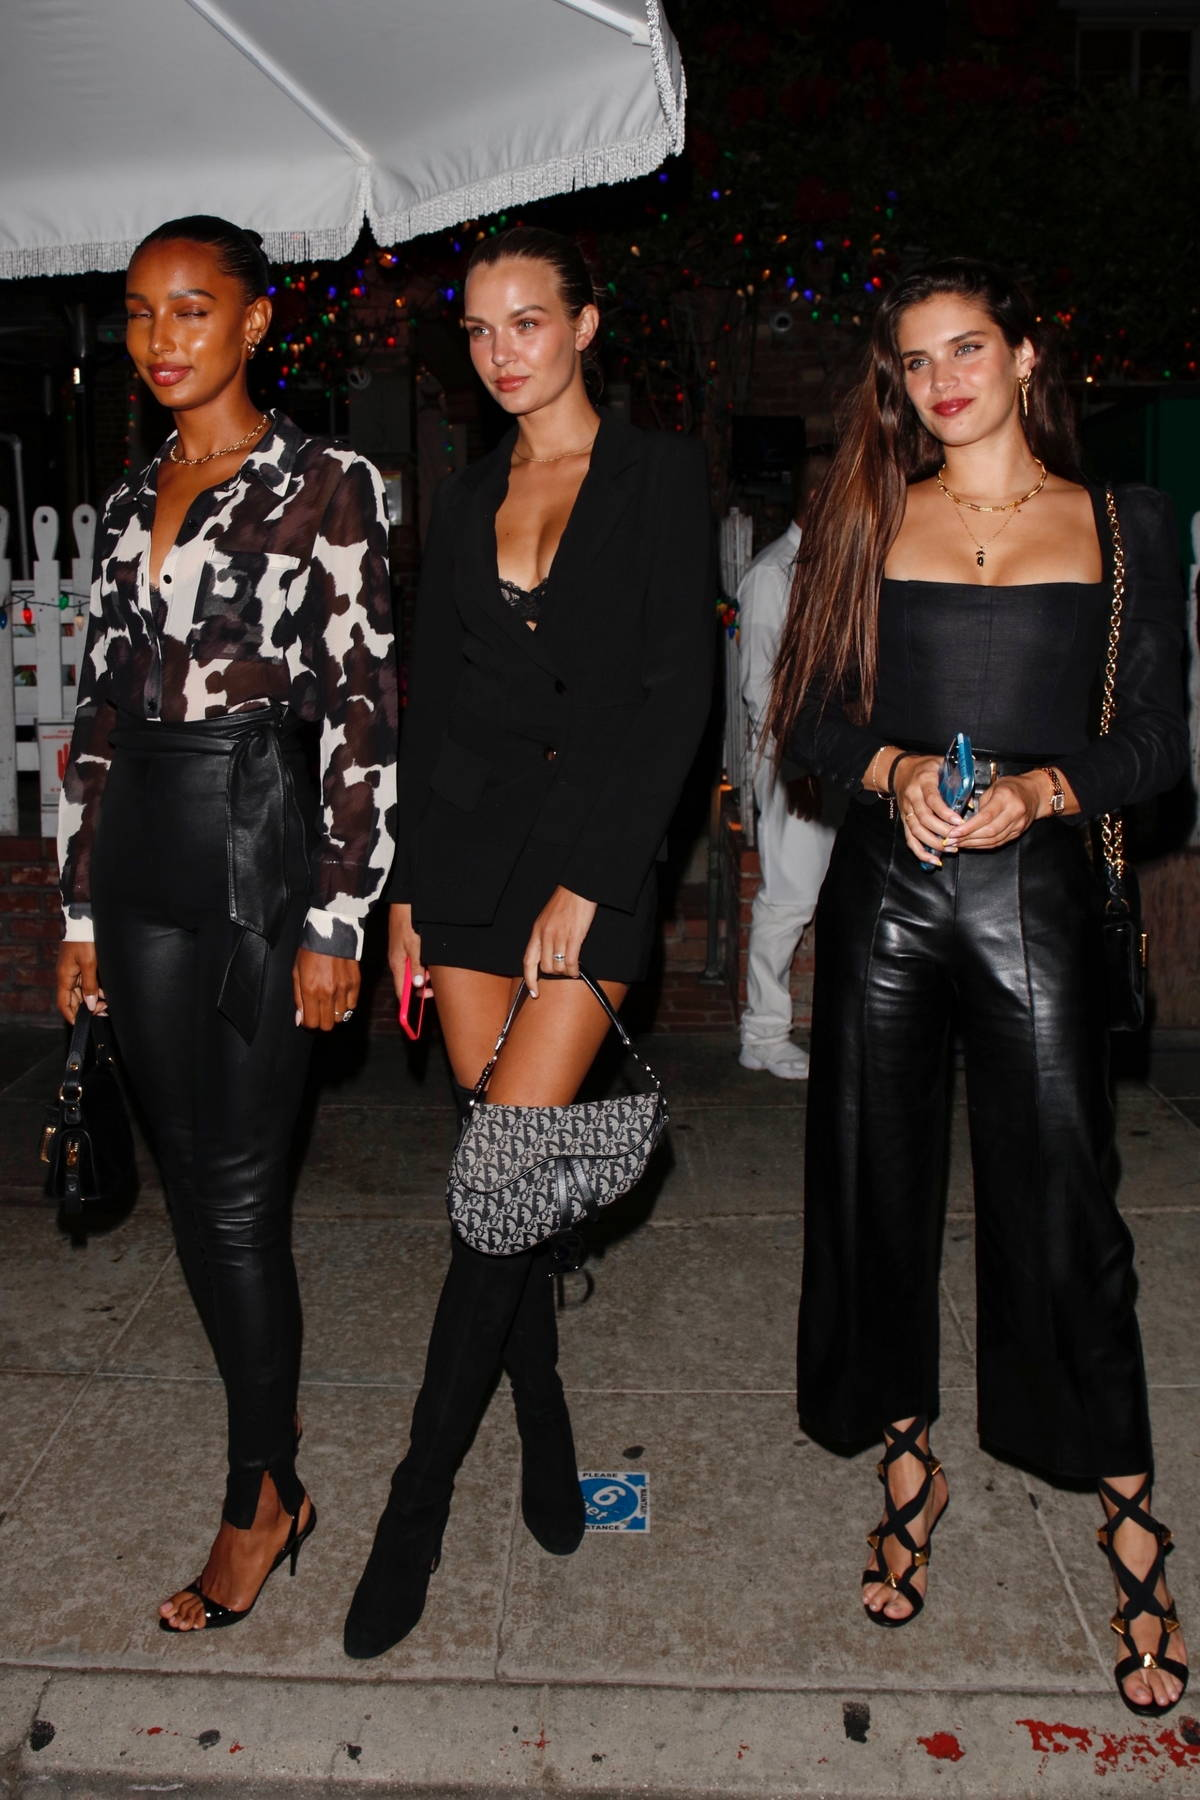 Josephine Skriver, Jasmine Tookes, and Sara Sampaio enjoy a girls night out at the Ivy in West Hollywood, California